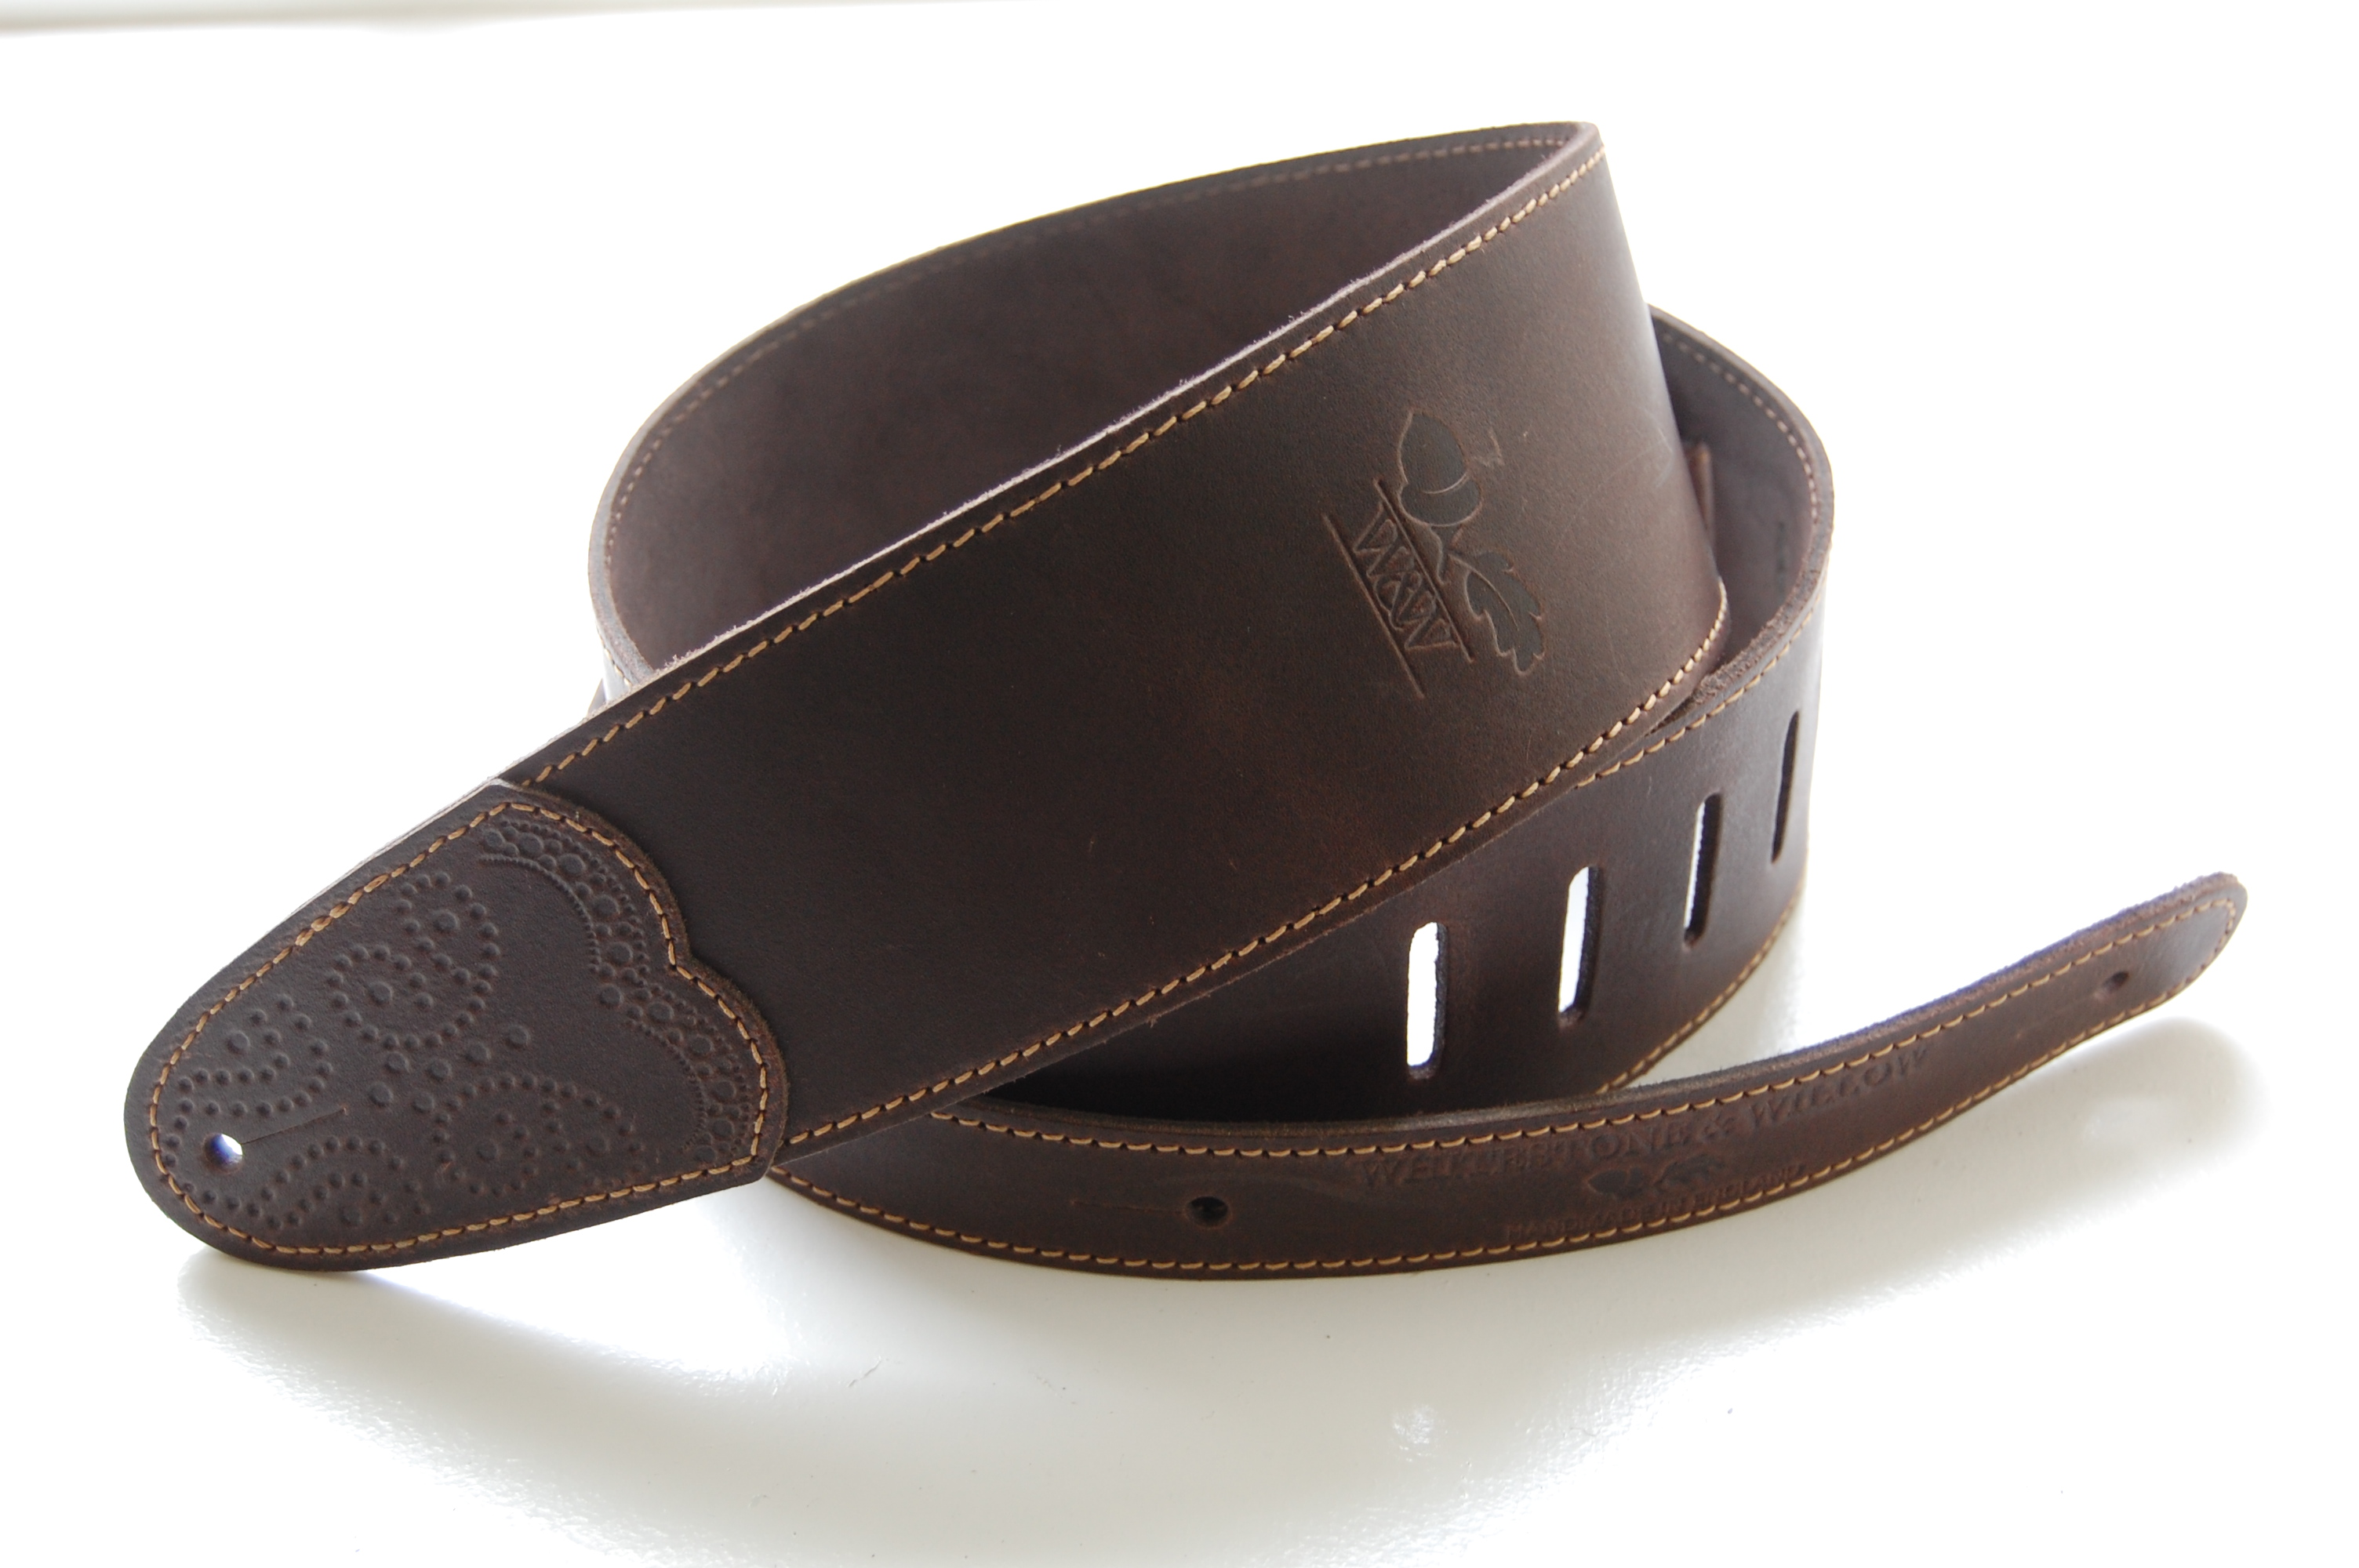 W&W Deluxe Leather Guitar Strap - Chocolate